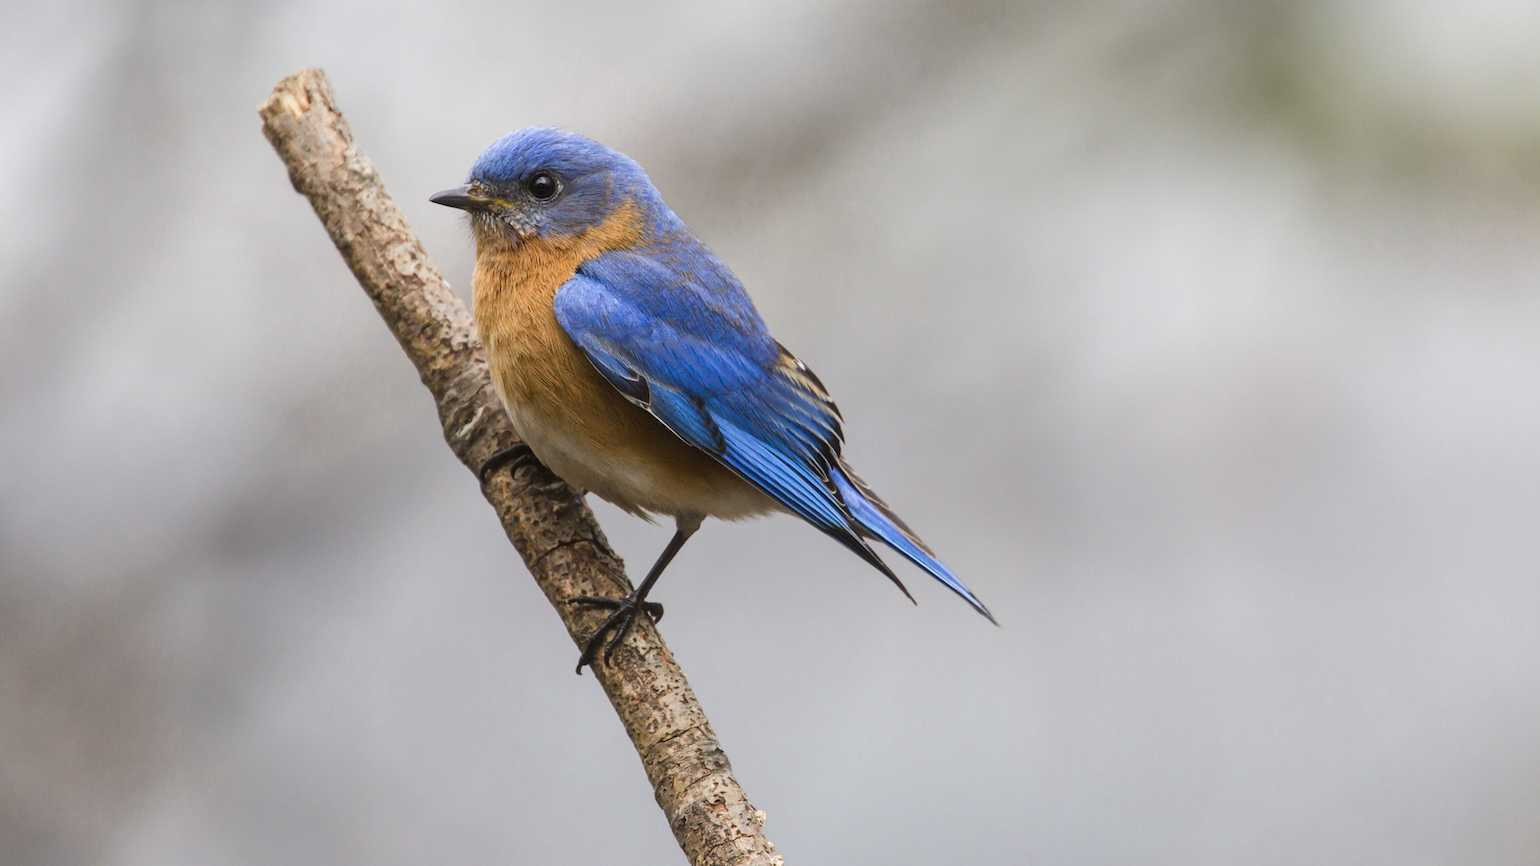 Bluebird of happiness may be real.